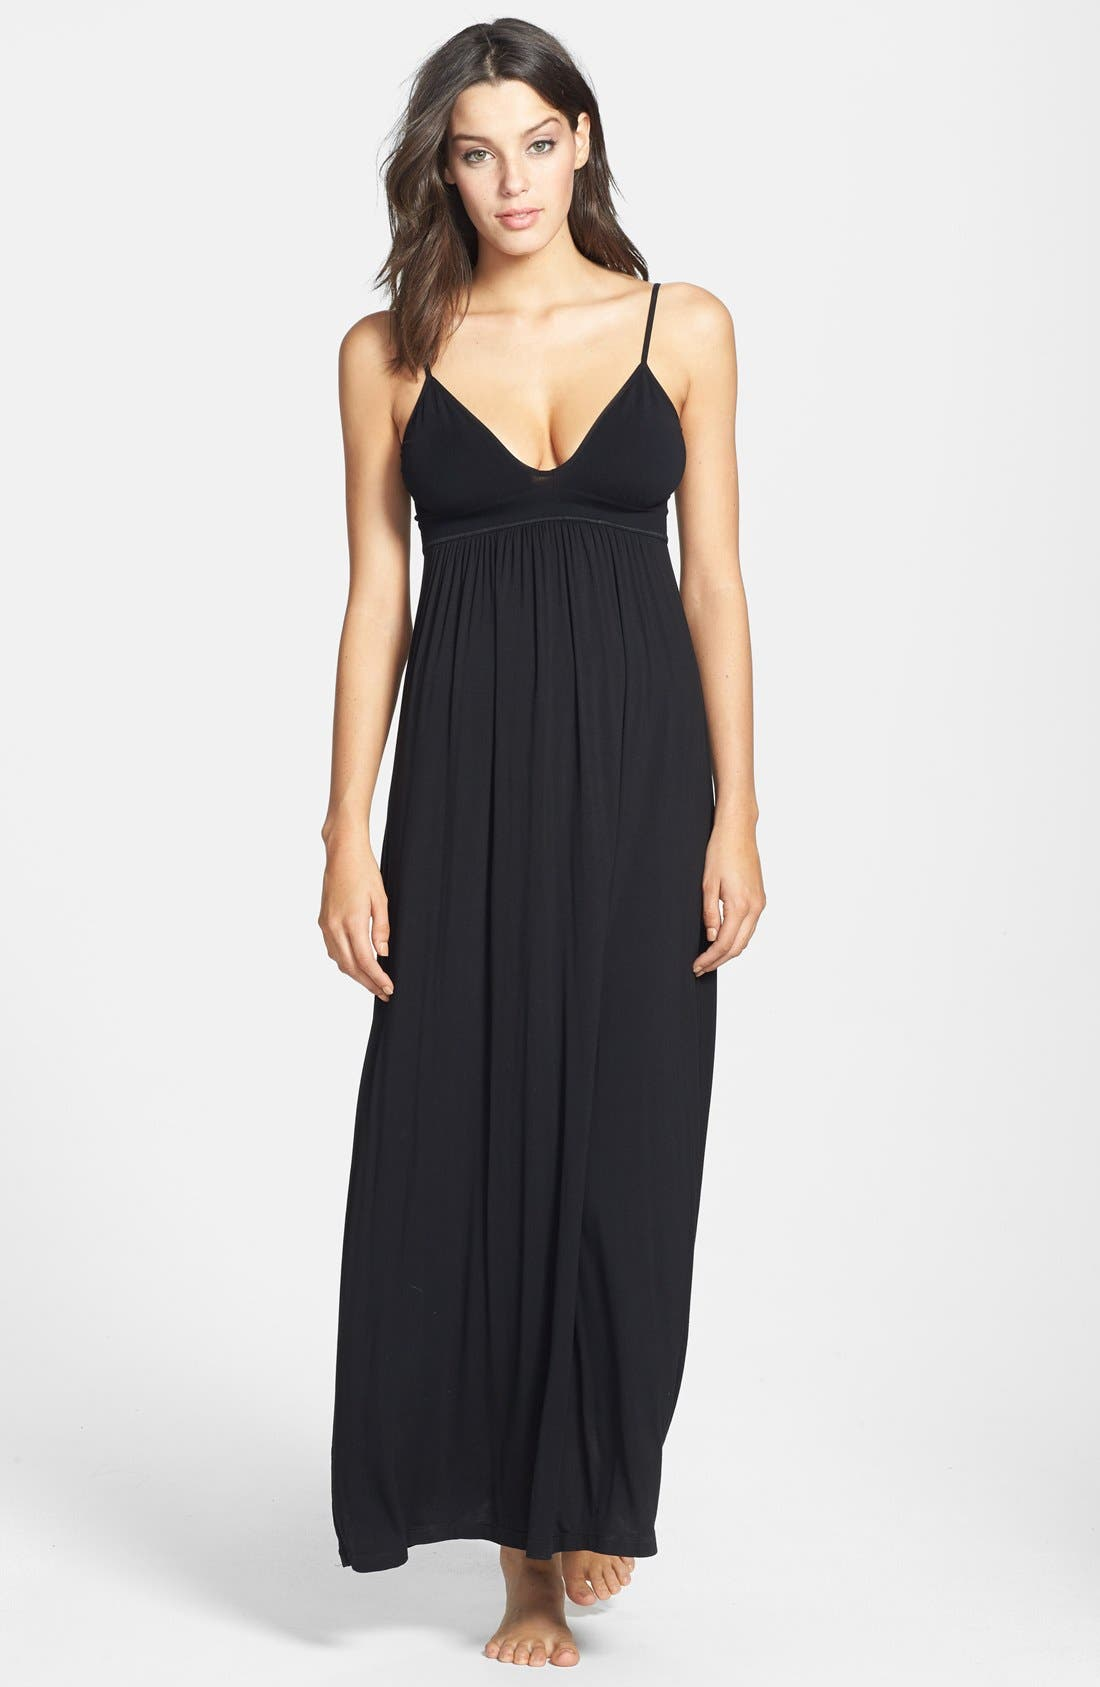 DONNA KARAN NEW YORK Donna Karan Liquid Jersey Empire Waist Nightgown, Main, color, 001